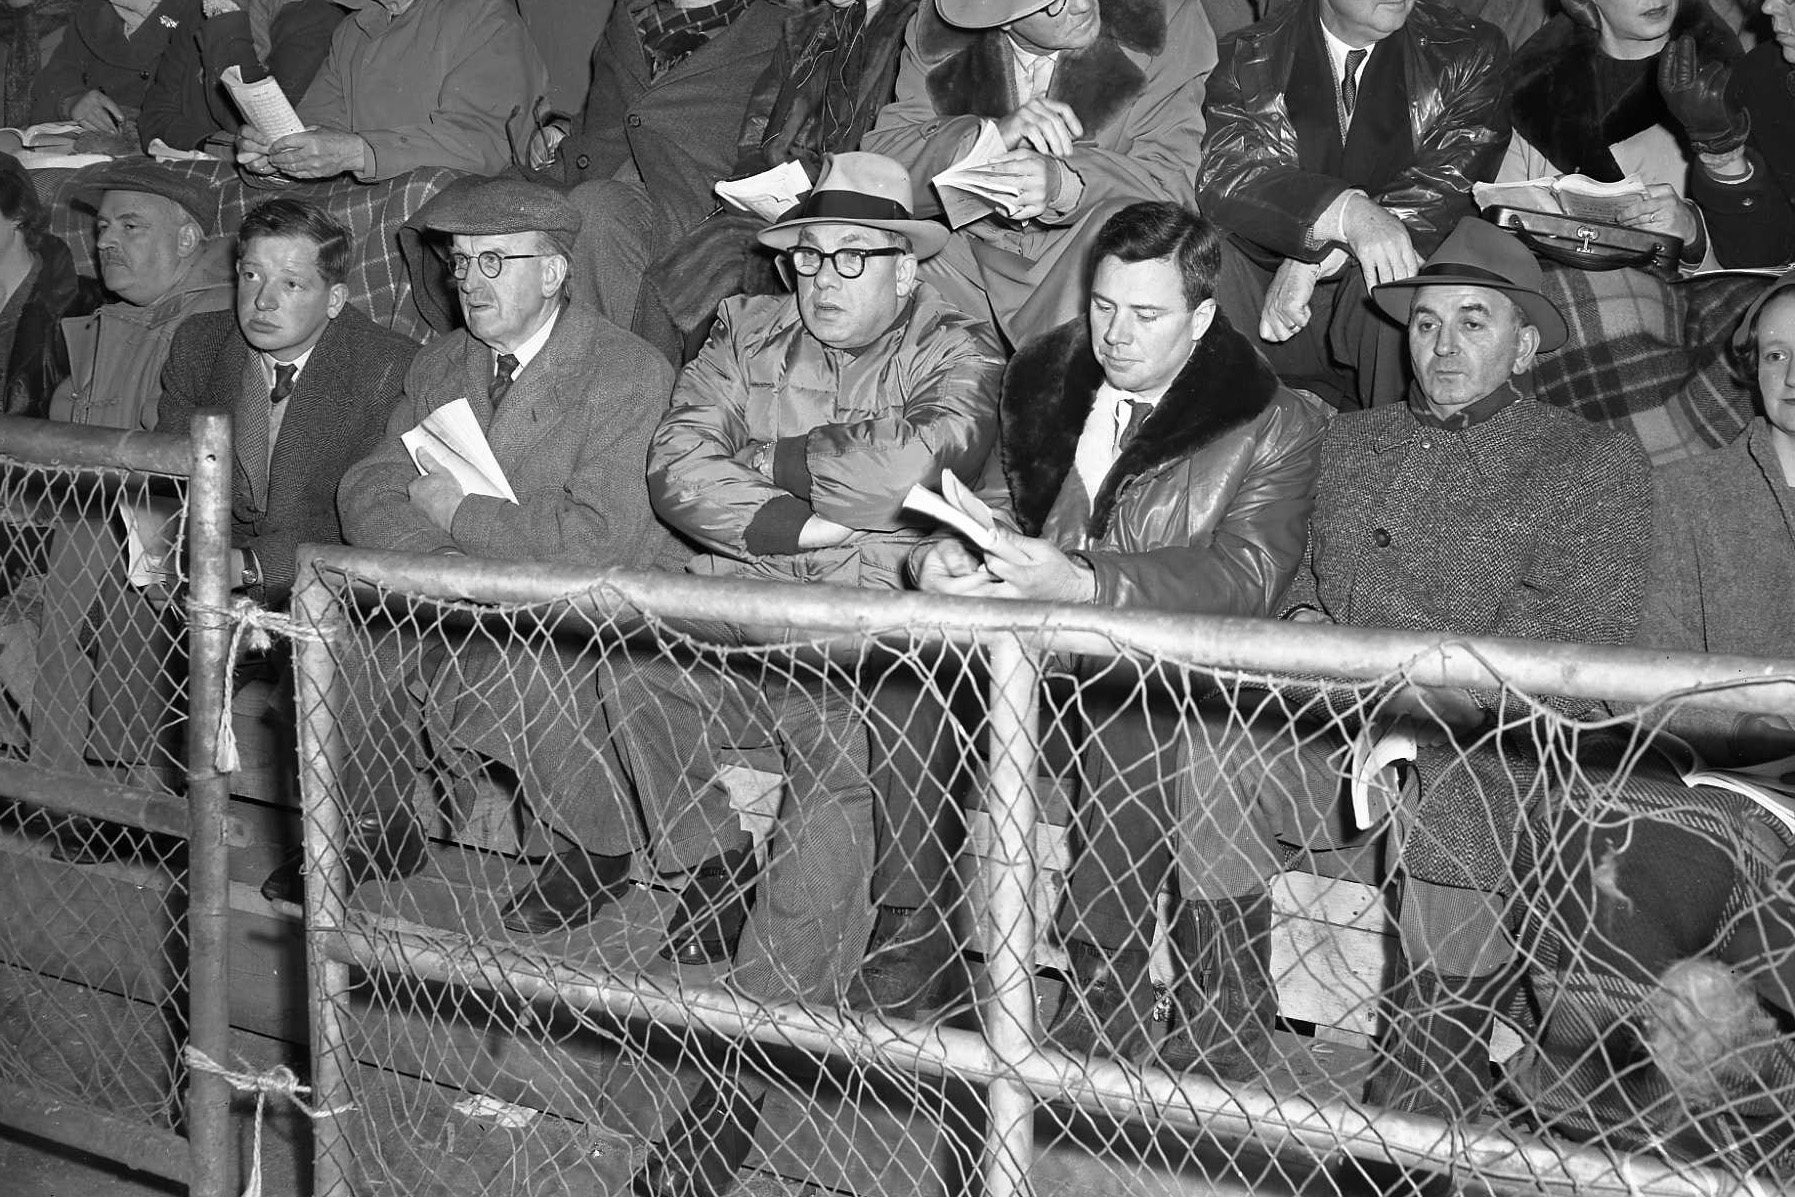 Some gentlemen watching the 1956 Beef Shorthorn show and the Perth Bull Sales